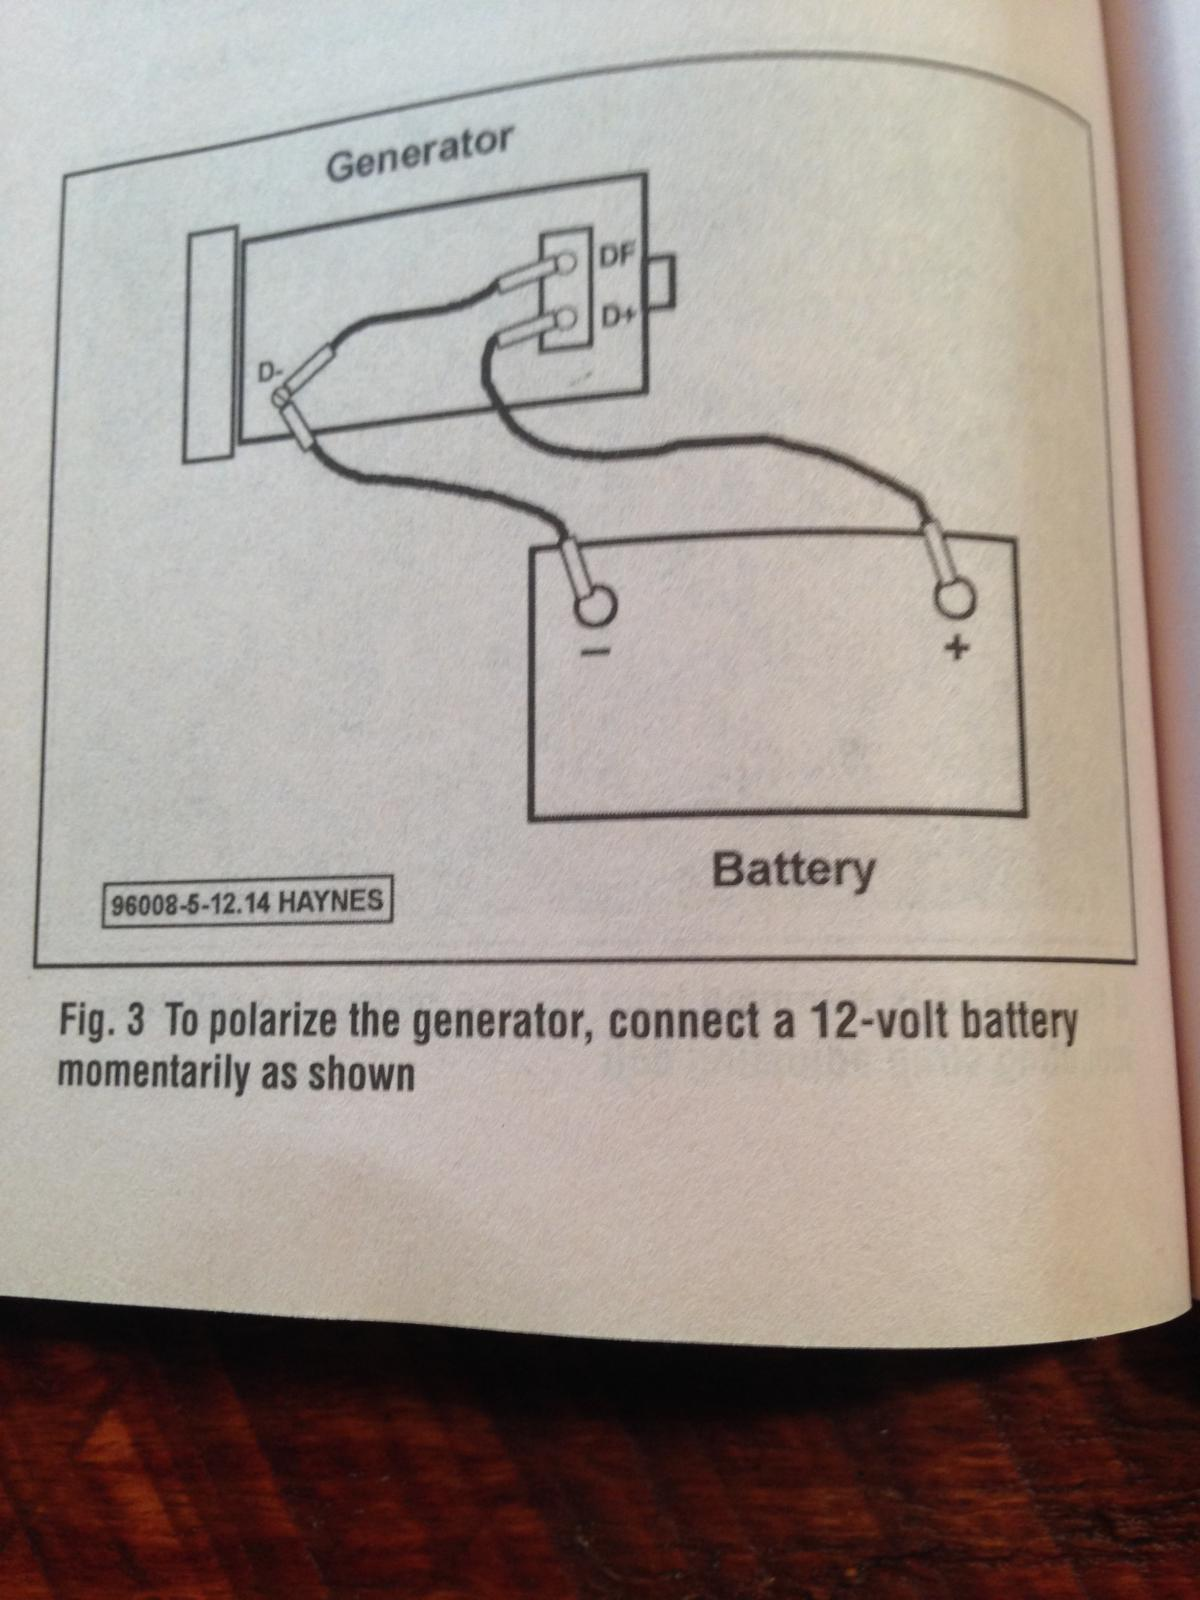 How to polarize a generator